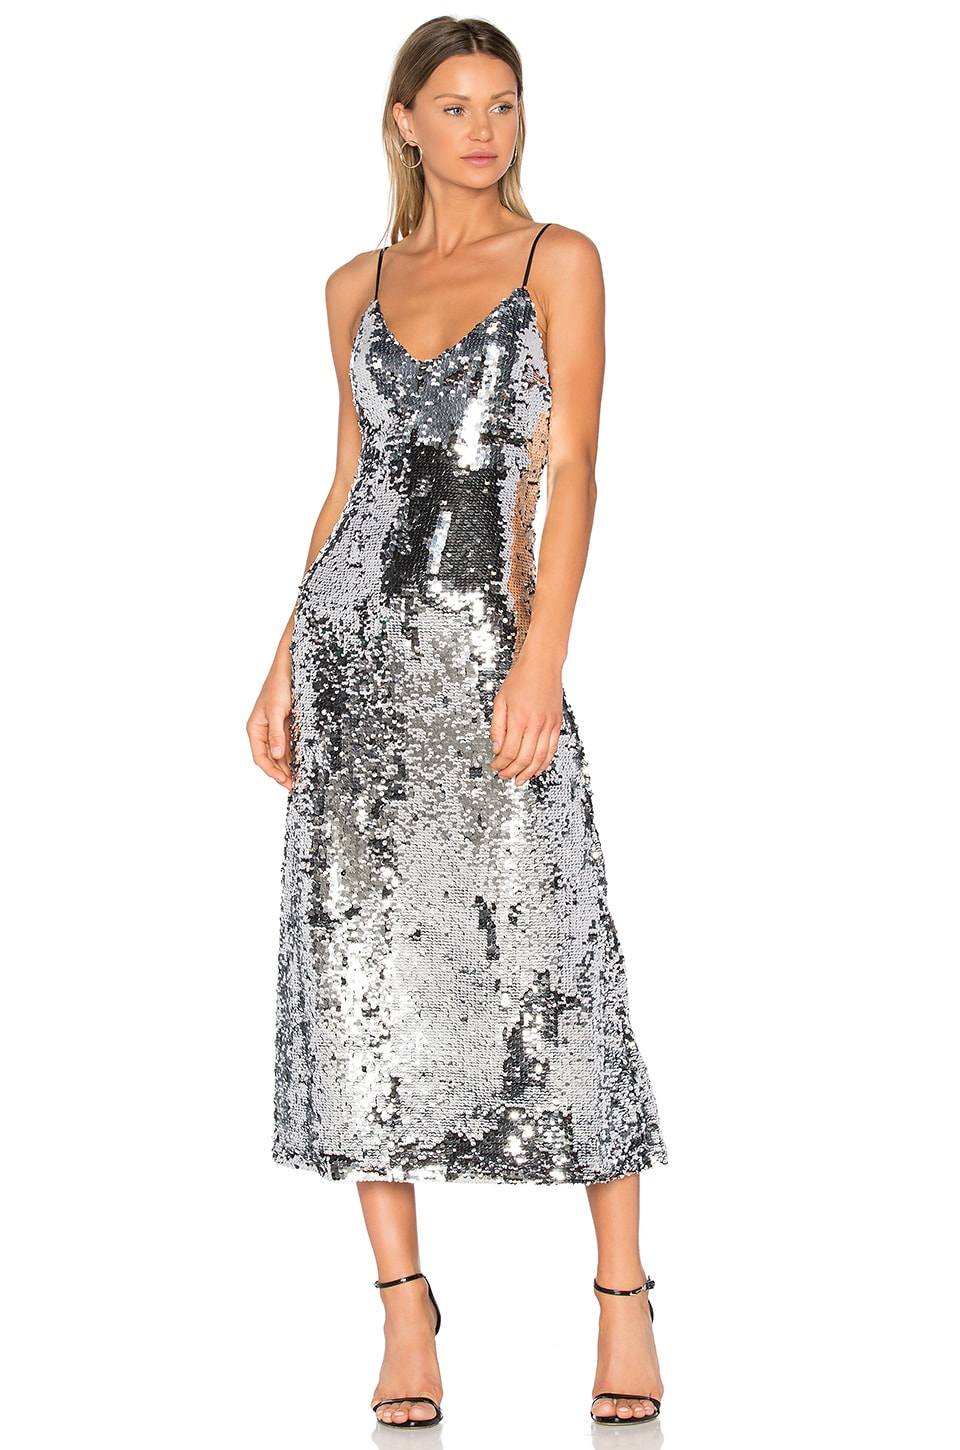 OFF-WHITE Sequins Slip Dress in Silver